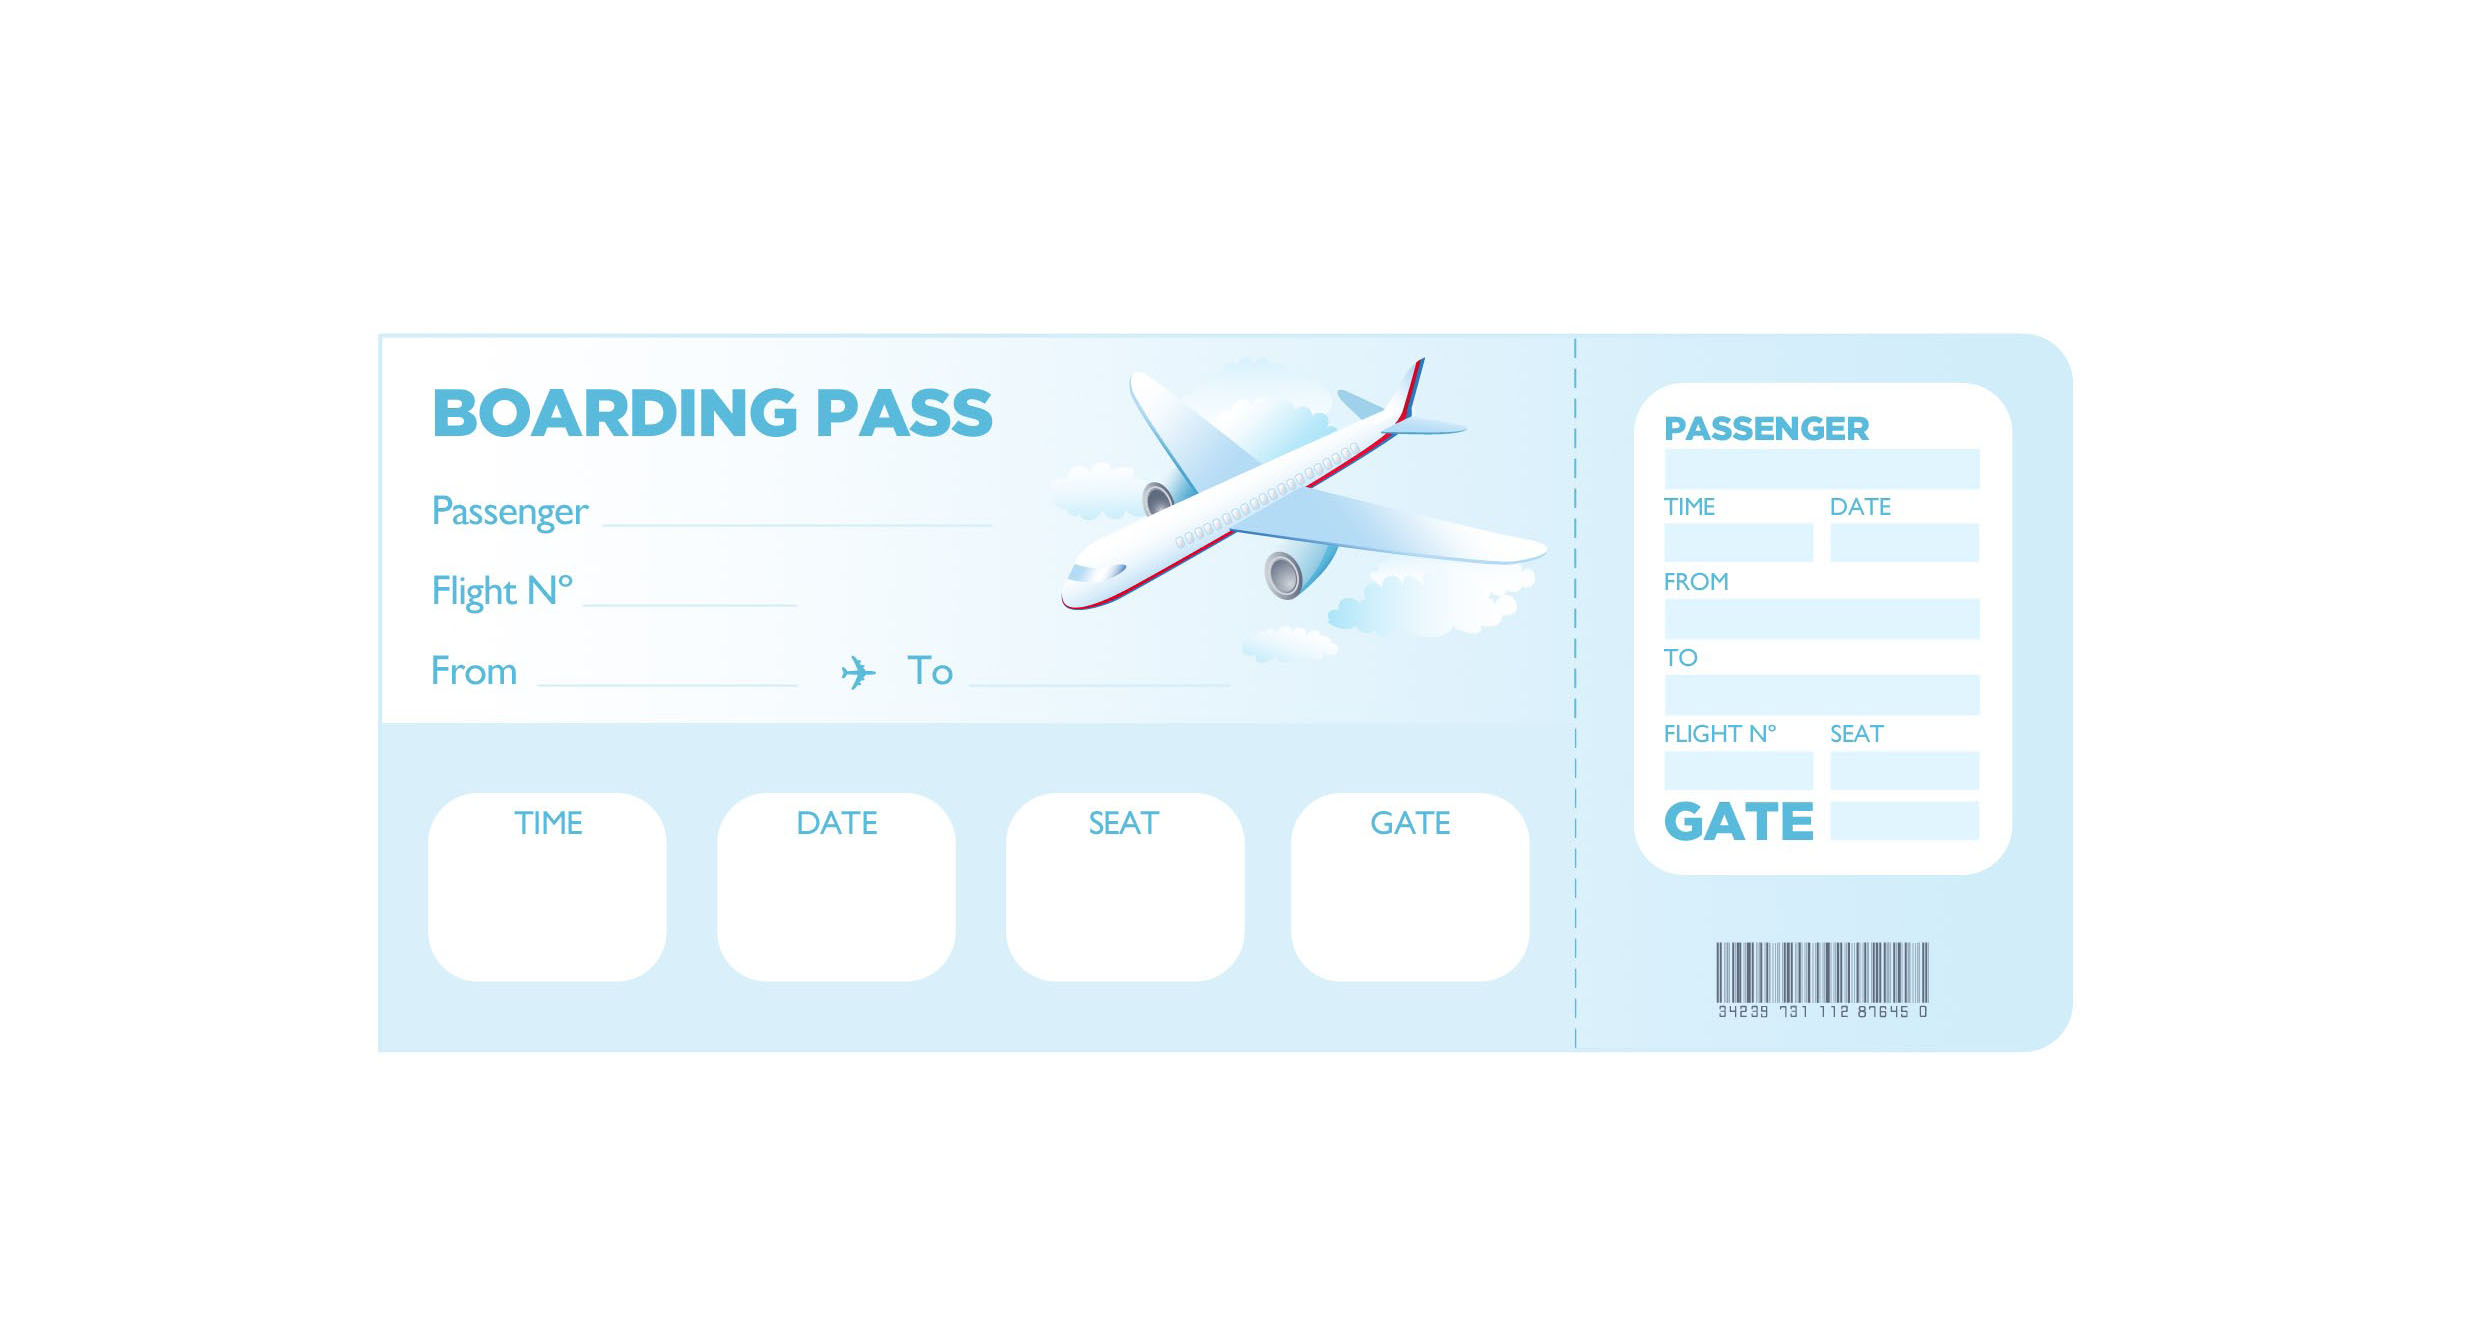 templates for the passport and boarding pass over at Paper Zip that sV7ue2Cq